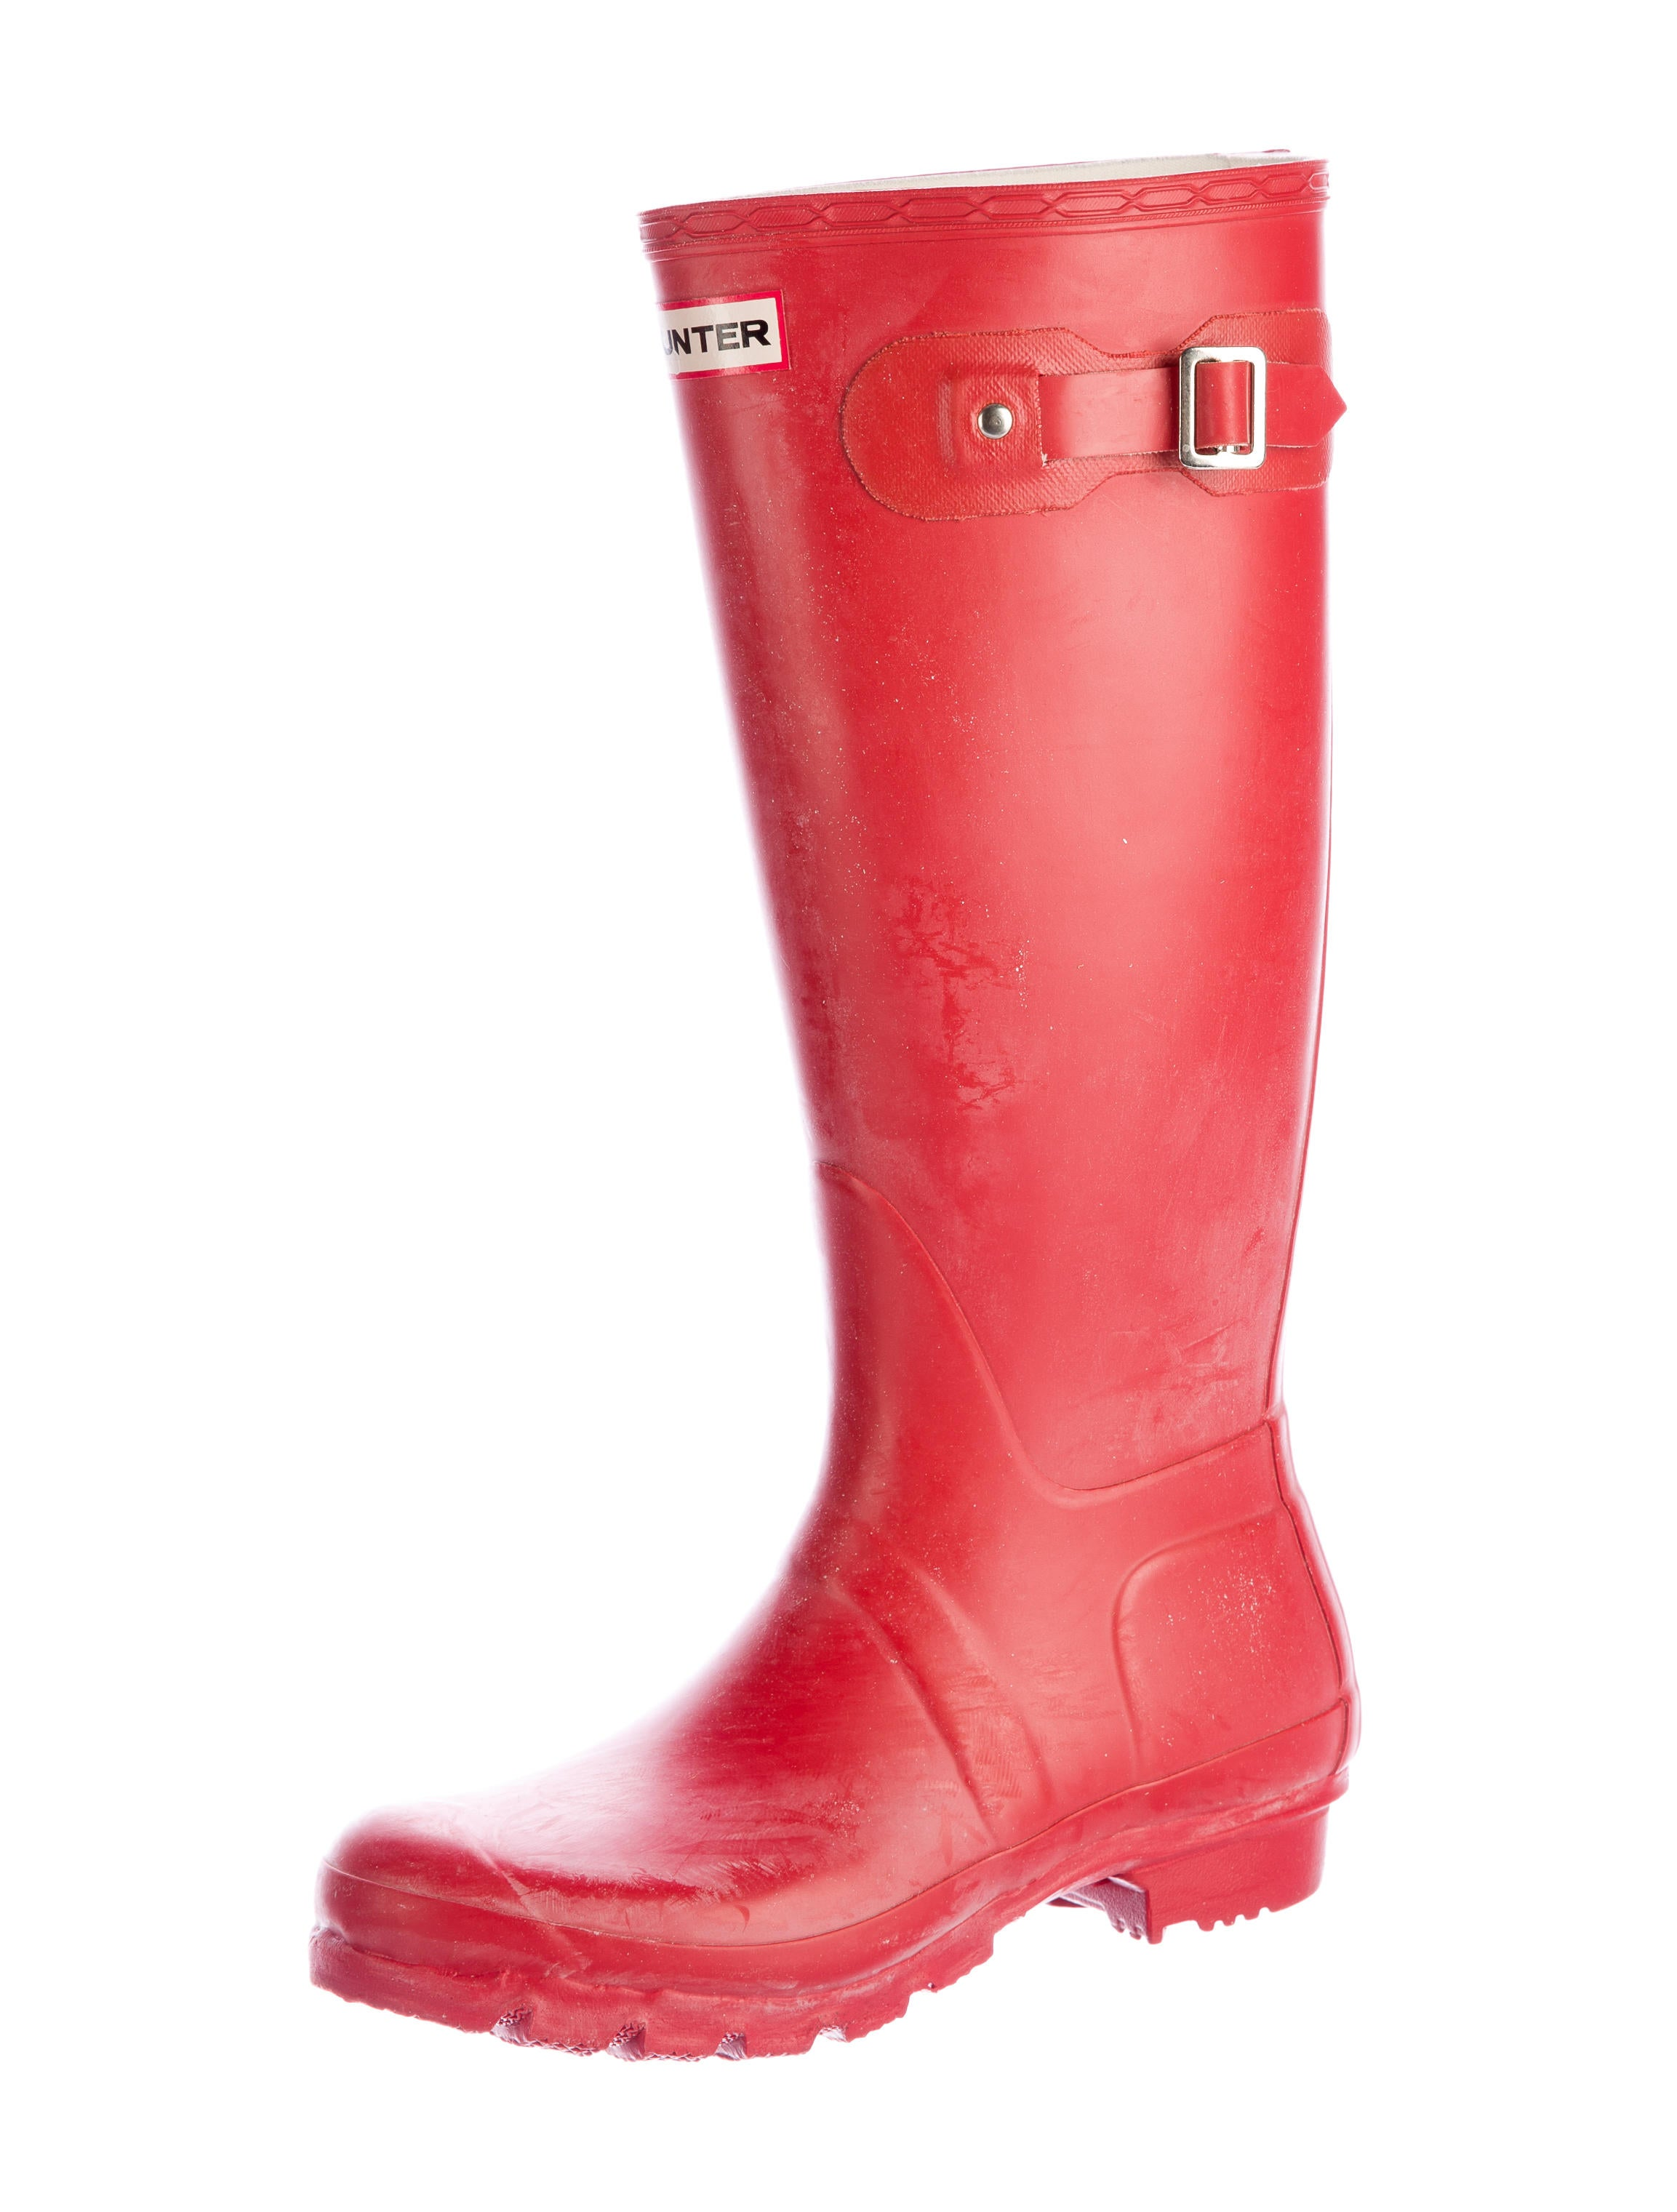 Hunter Rubber Rain Boots - Shoes - WH821471 | The RealReal